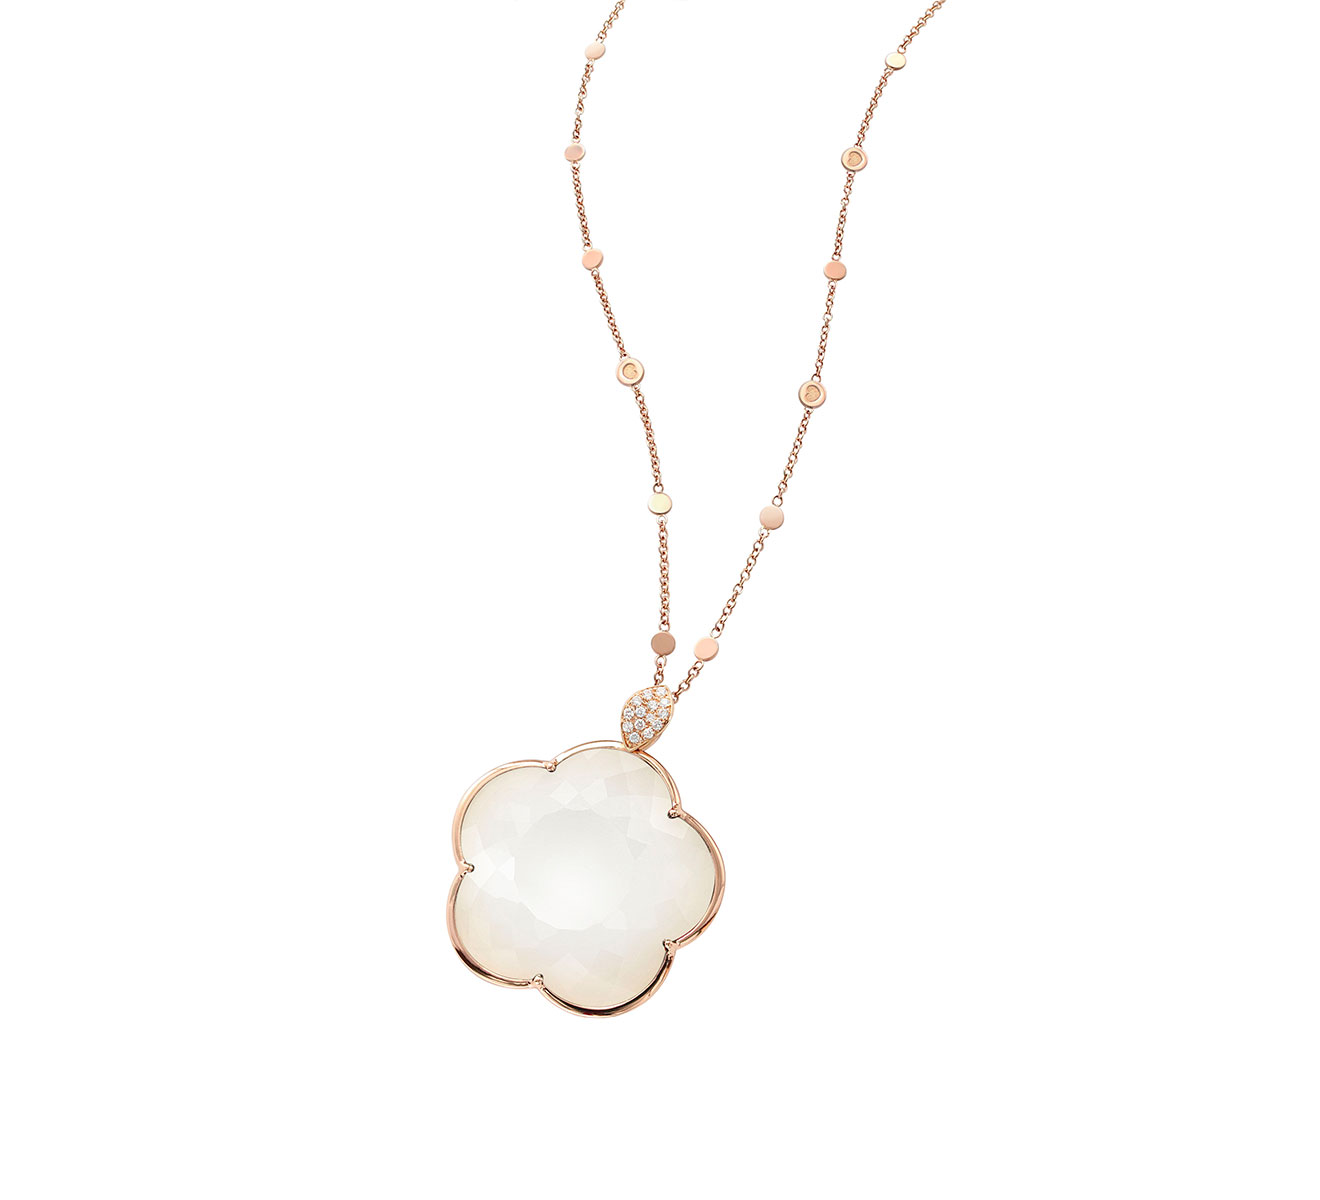 Pasquale Bruni Necklace Easter Ton Ton Joli gold white agate 15867R